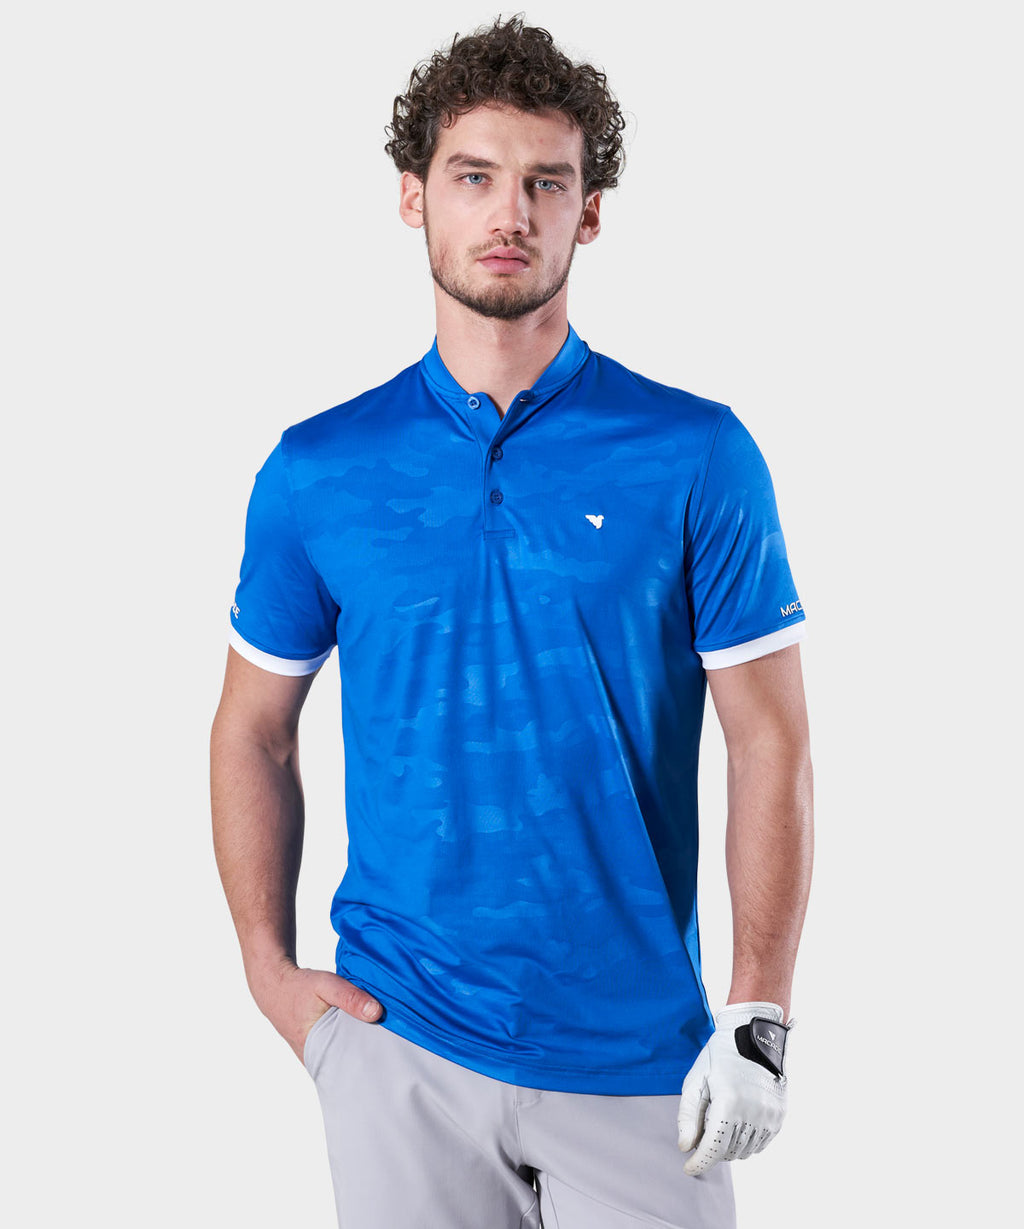 Blue Camo Flex Polo Shirt